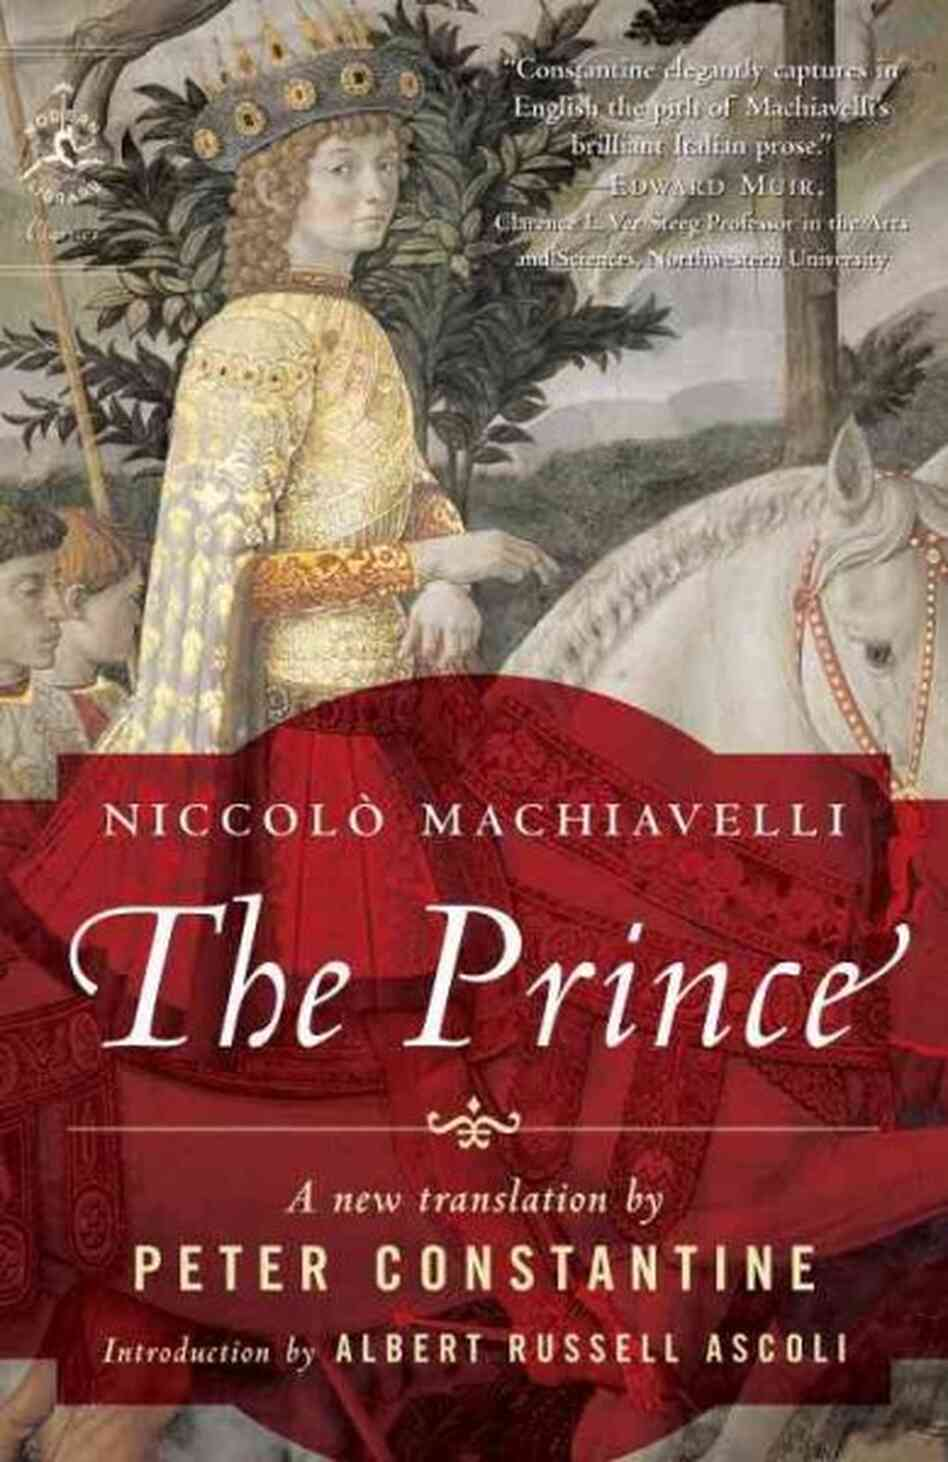 Recent Forum Posts on Niccolo Machiavelli